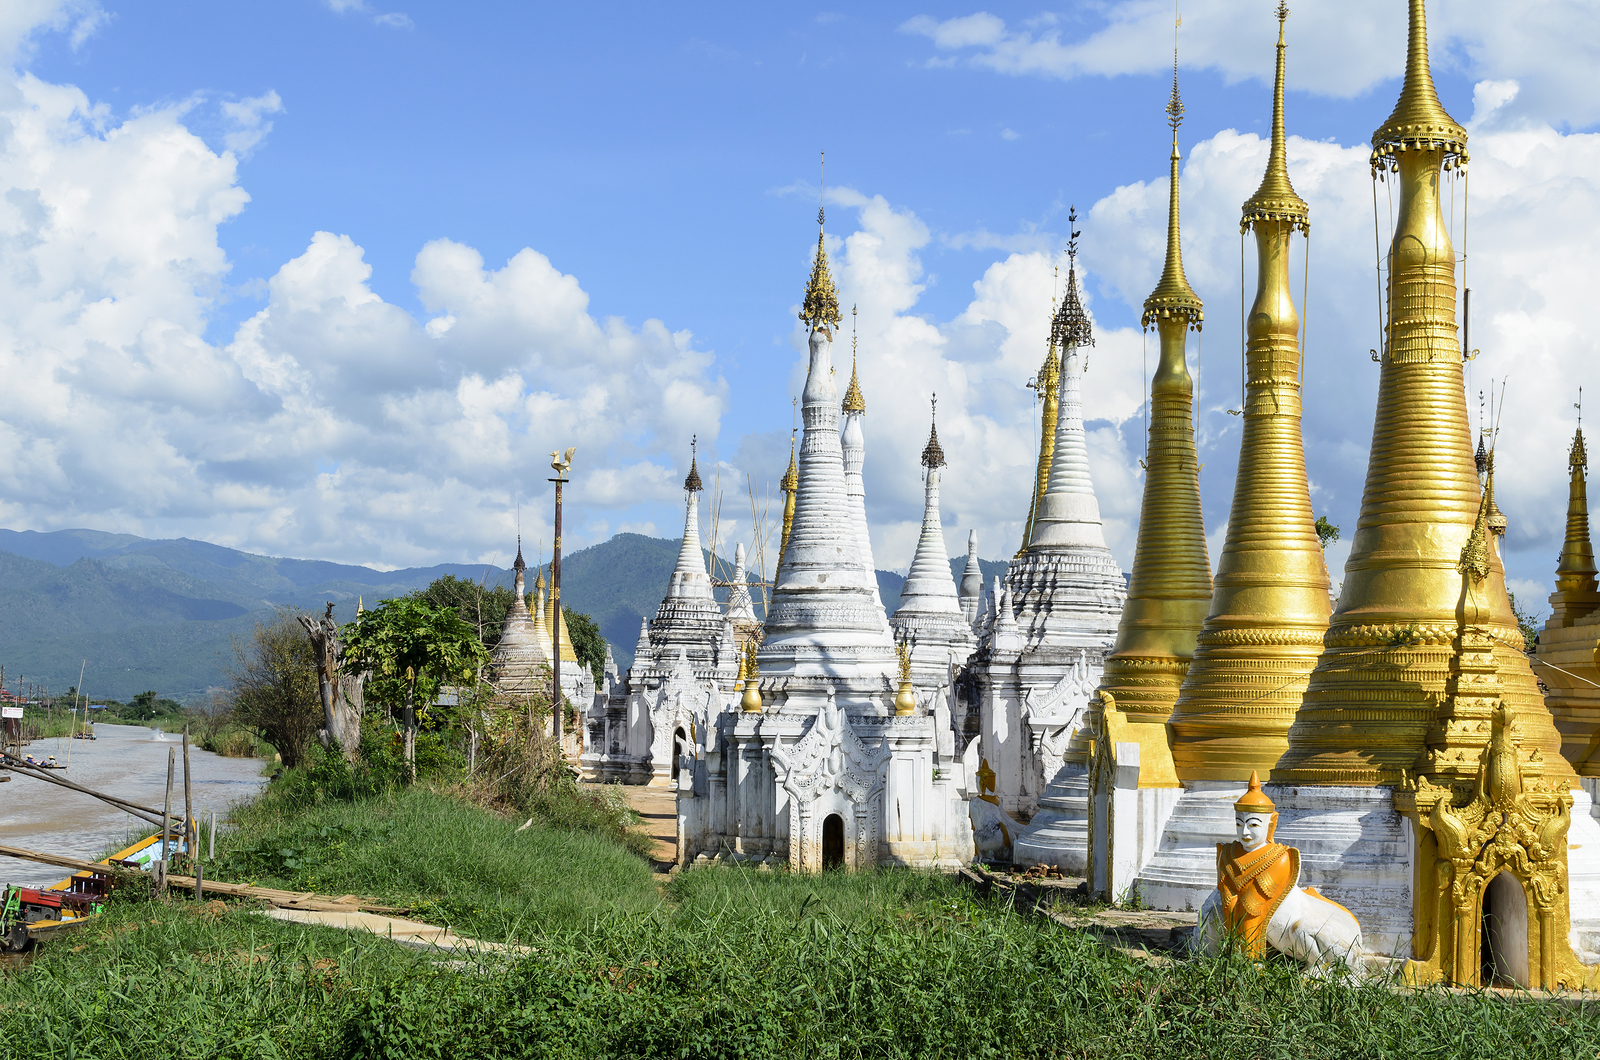 Shwe Inn Thein Inle Lake Myanmar